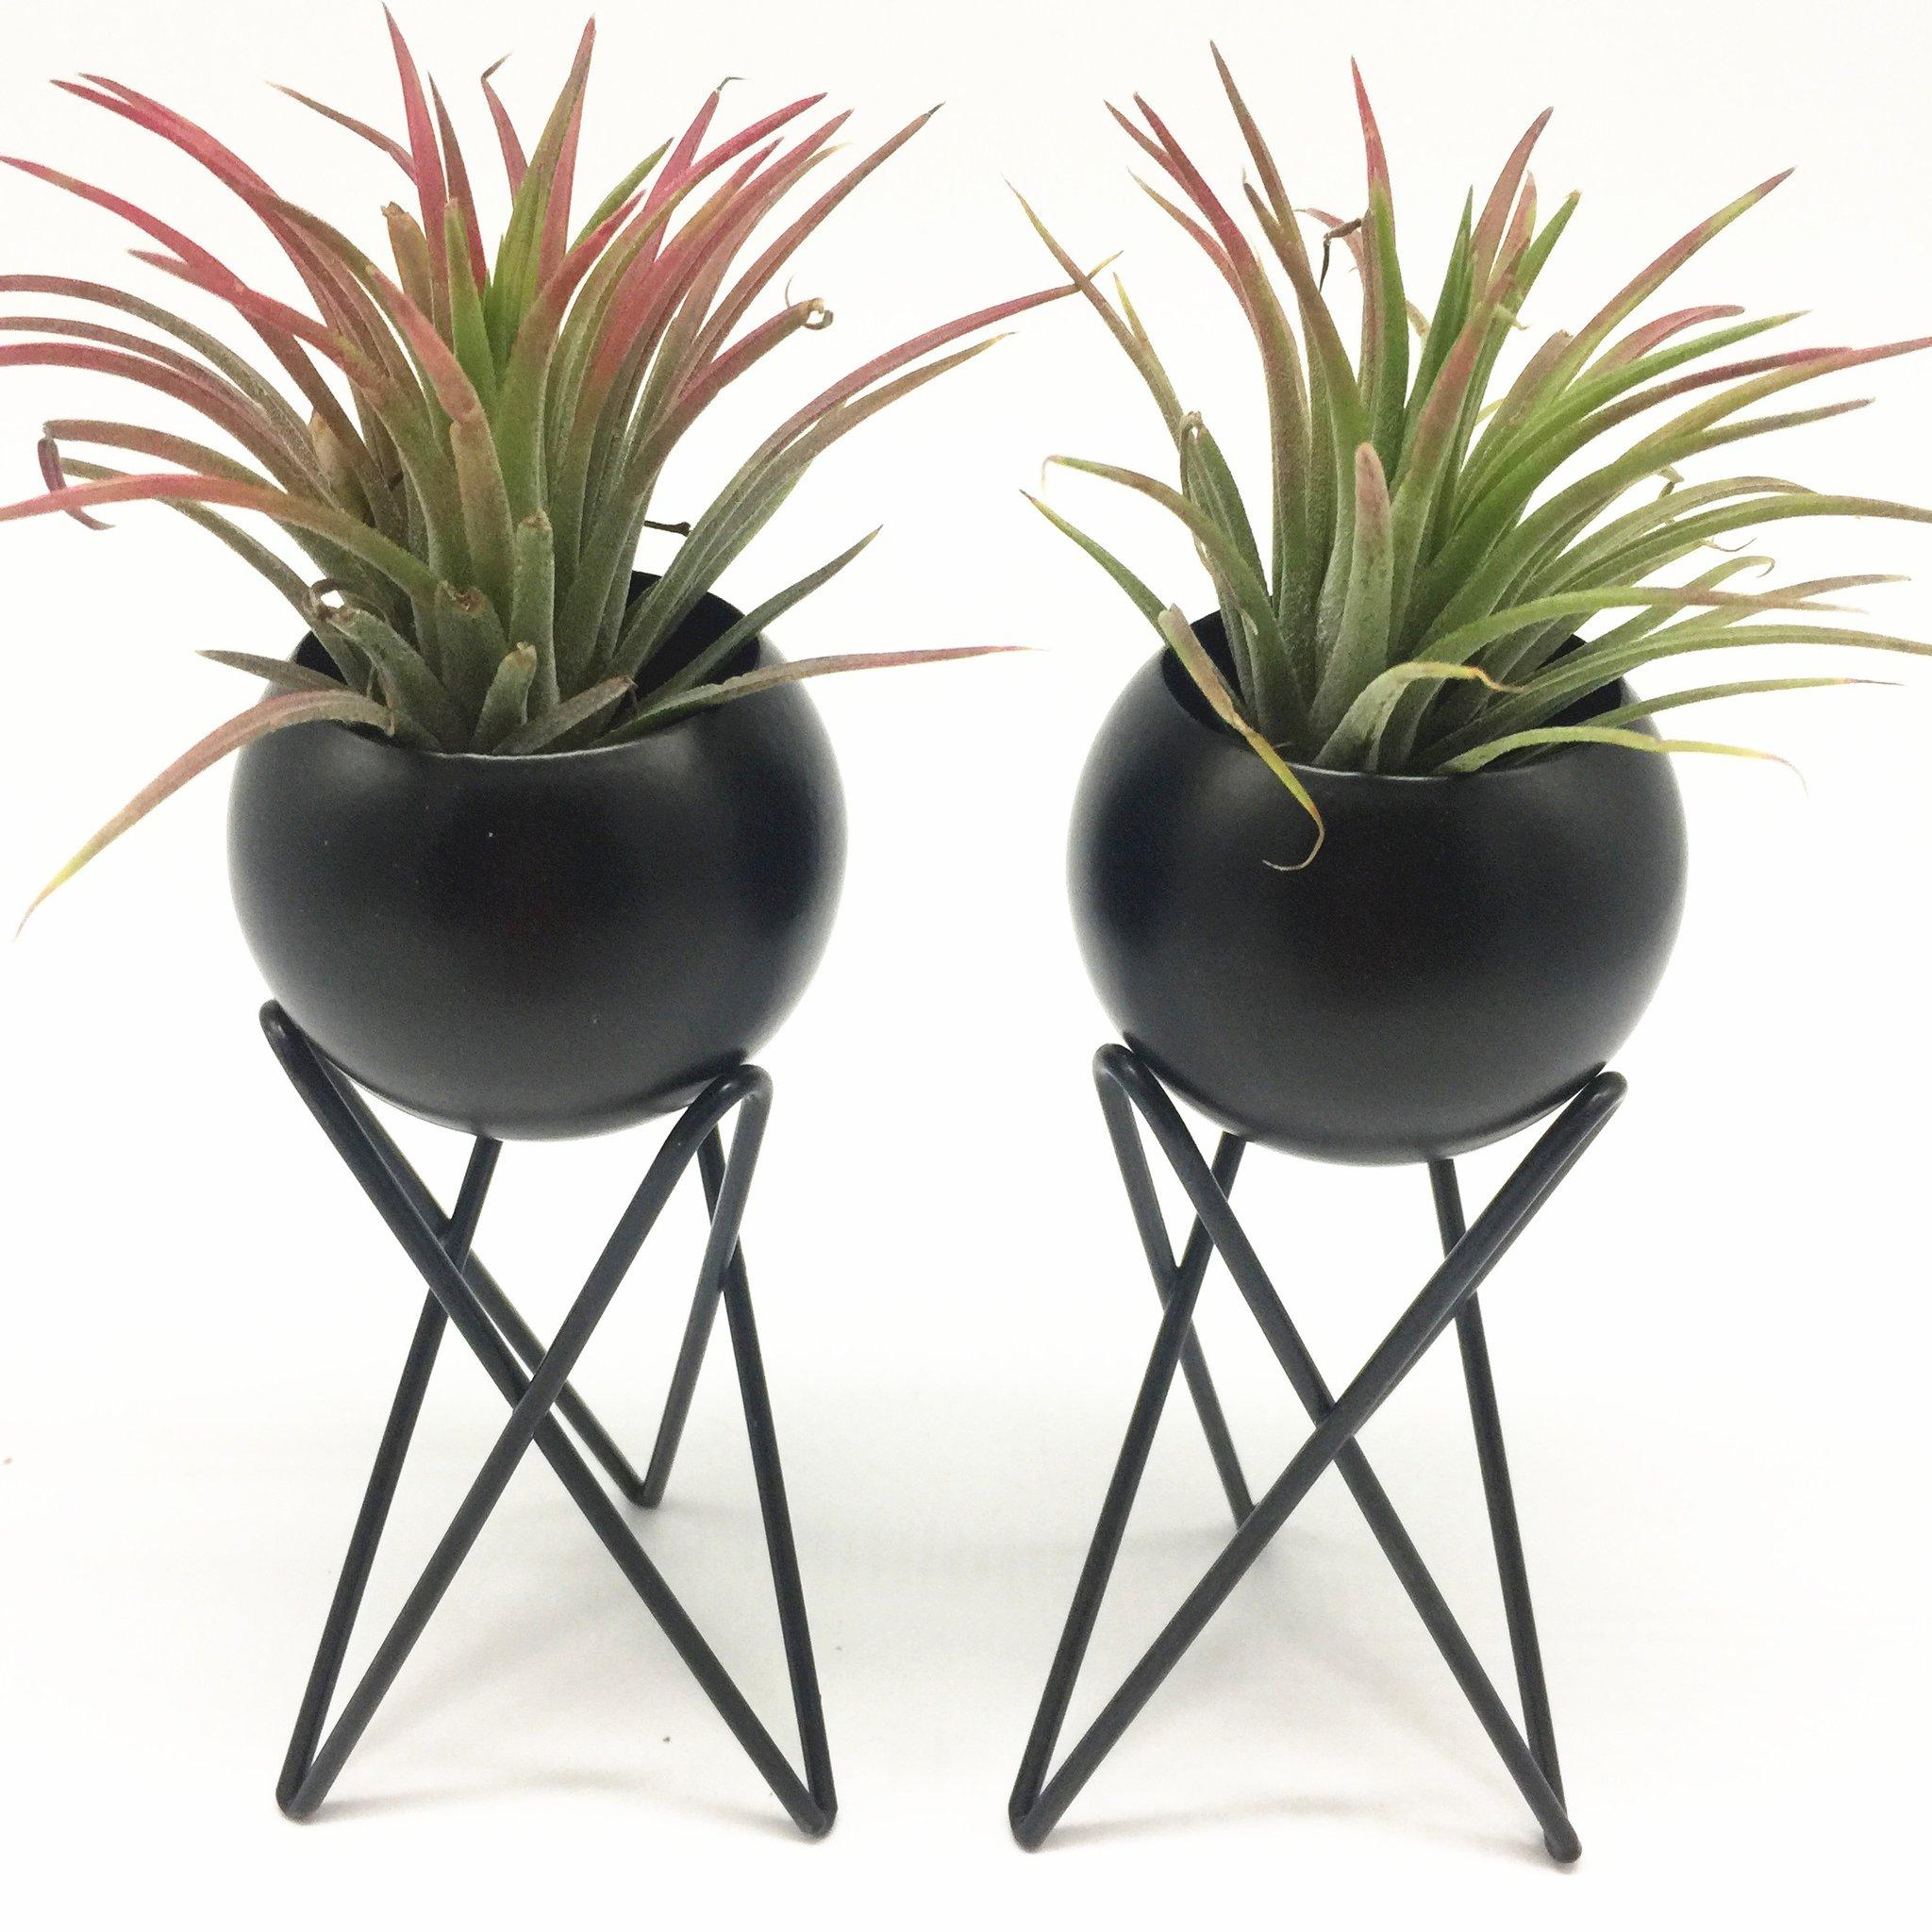 2021 Tabletop Standing Air Plant Holder Air Plant Stand Air Plant Container Tillandsia Holder Tillandsia Stand From Txbiao 20 11 Dhgate Com